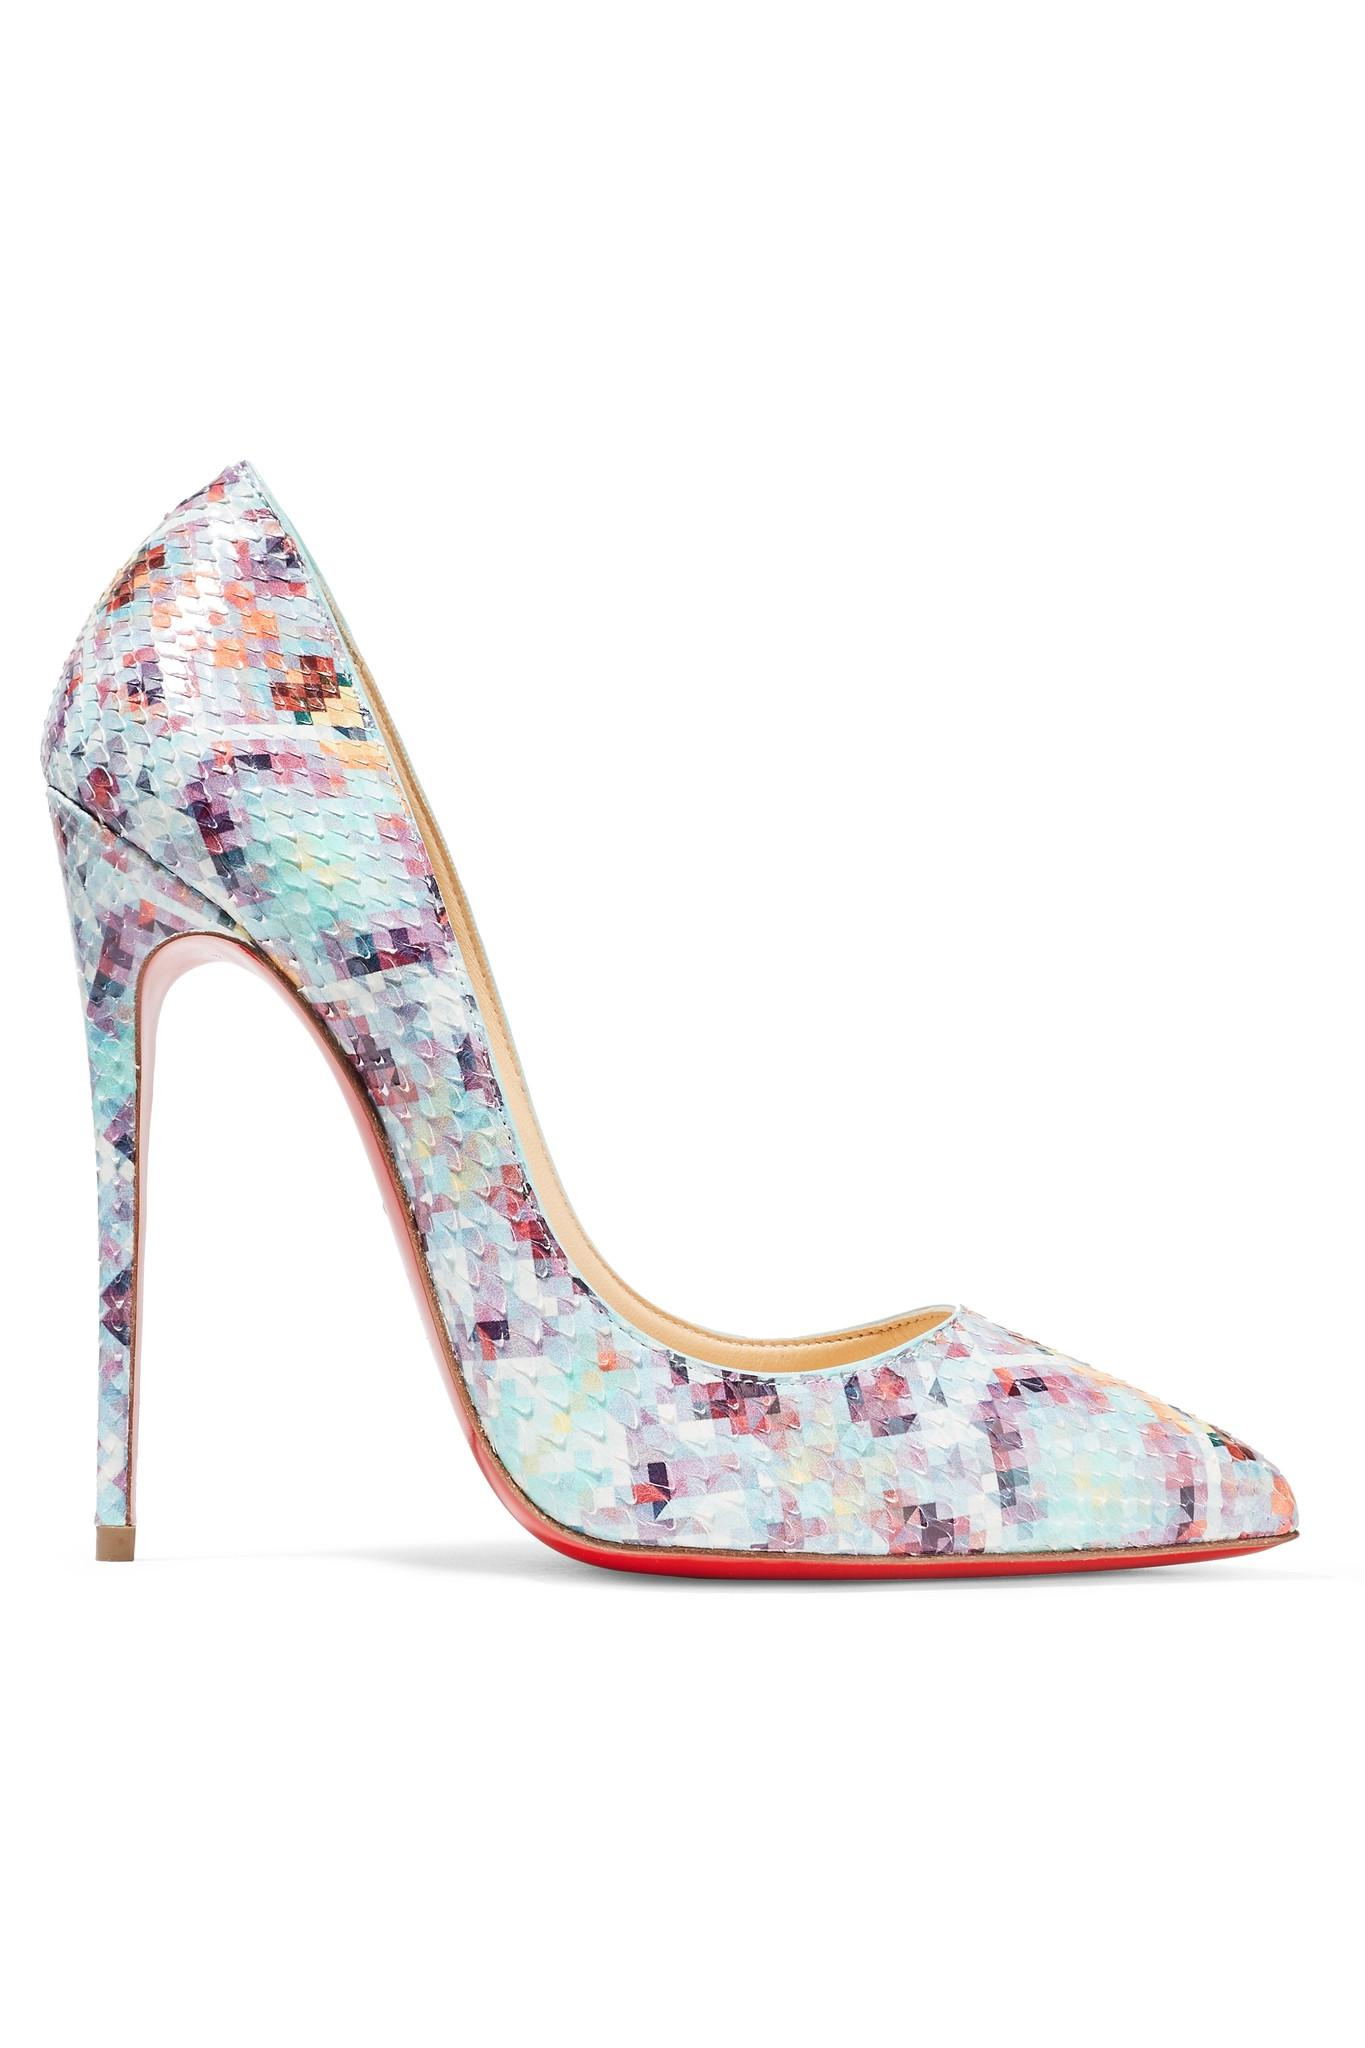 cafd4220a73 Lyst - Christian louboutin Pigalle Follies Printed Snakeskin Court Shoes in  Blue